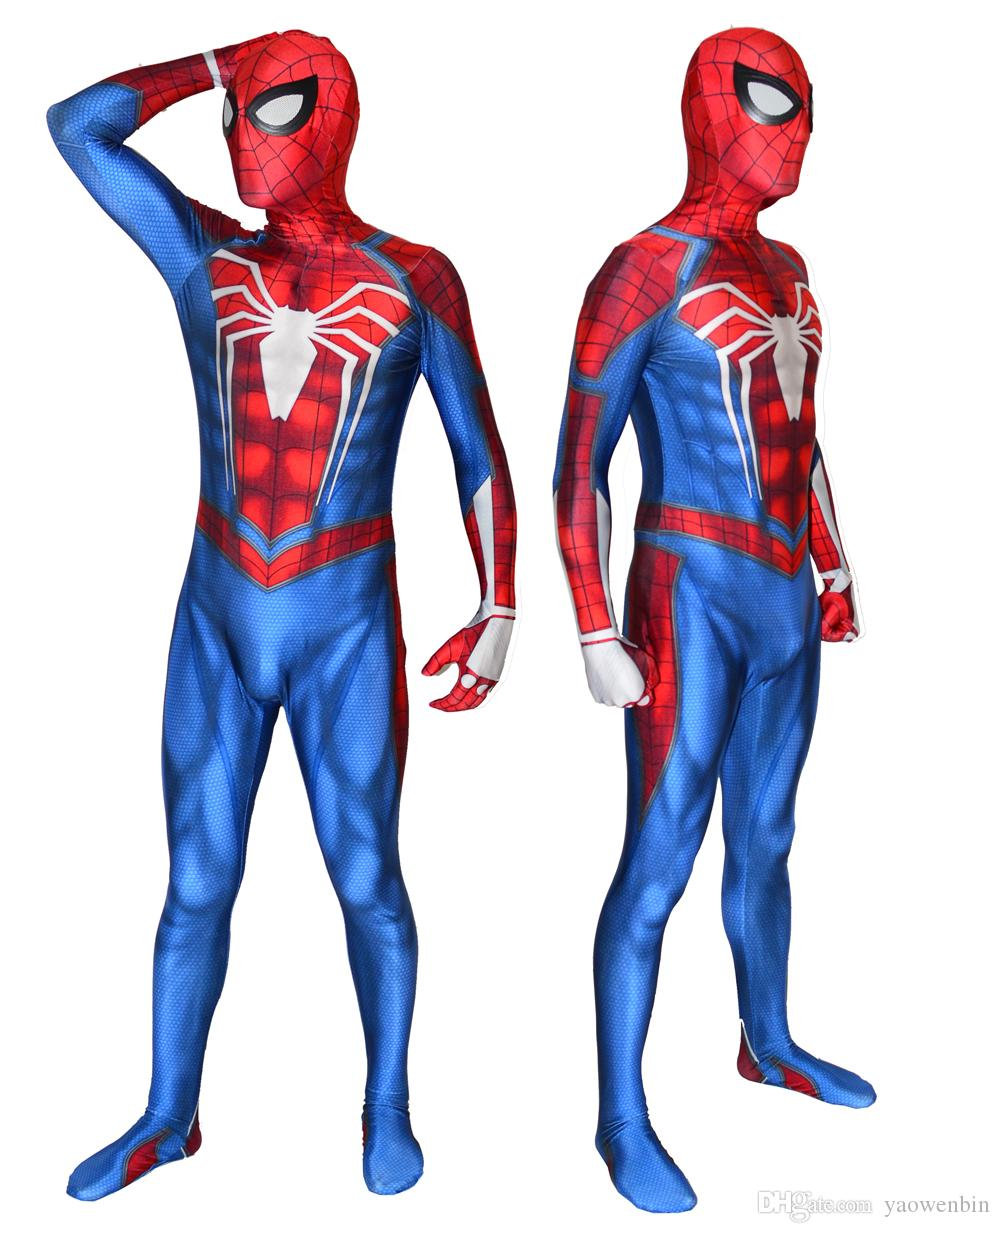 Game PS4 Spiderman Costume Lycra Spandex High Quality Insomniac Spider-man Cosplay Bodysuit For Adult/Kids Halloween costume